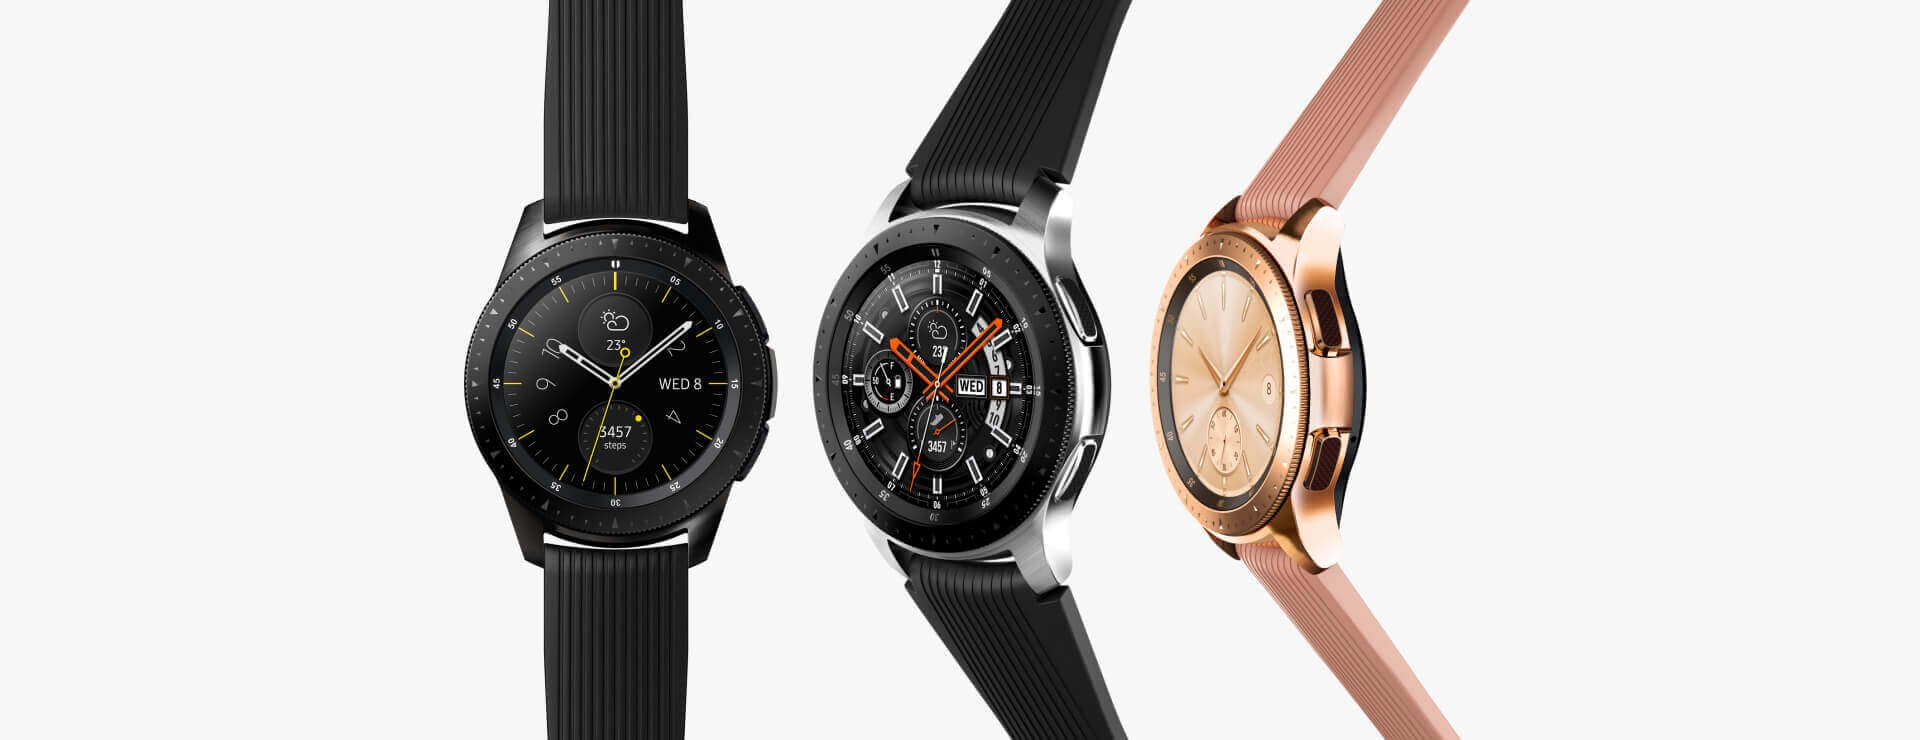 samsung, samsung galaxy watch, galaxy watch active, galaxy watch active specs, galaxy watch active release date